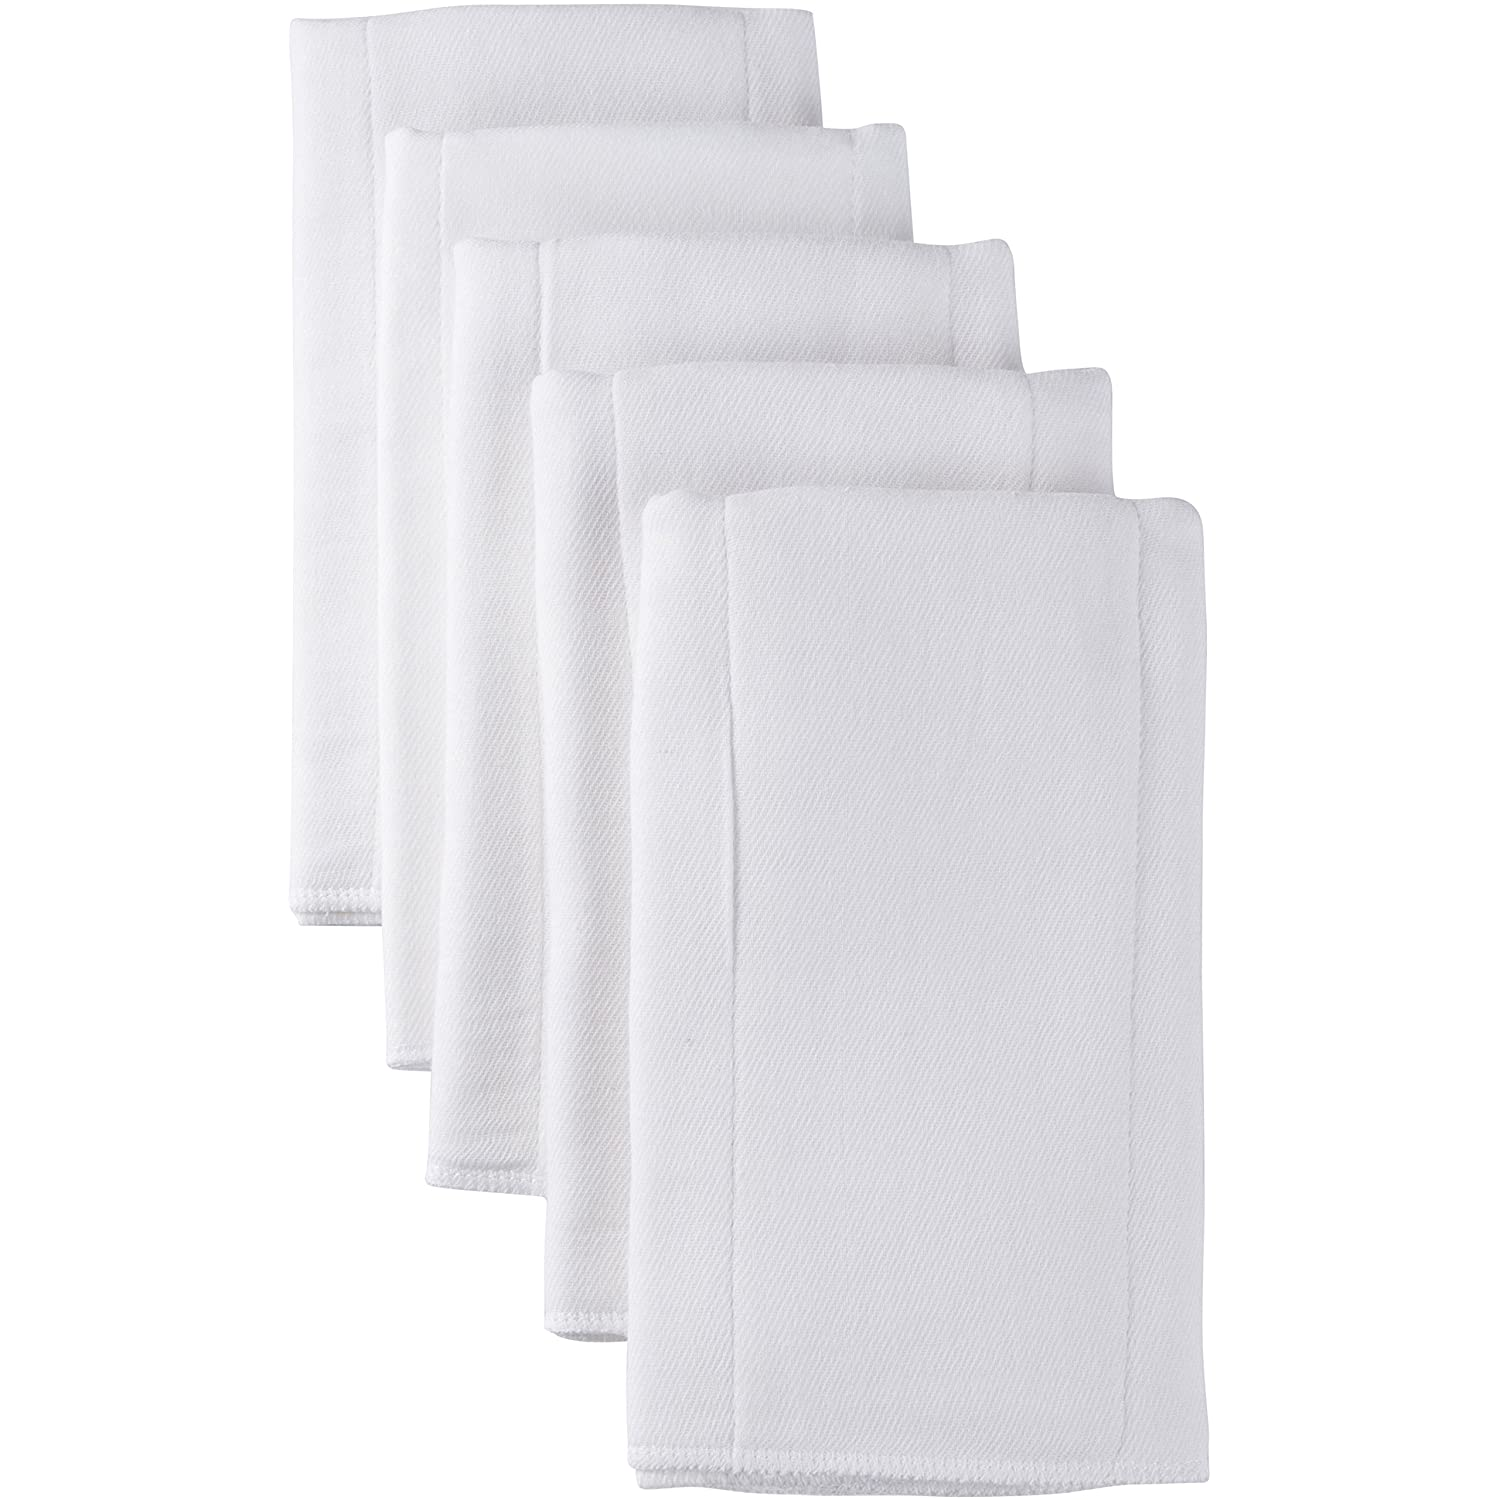 Gerber 5 Count Heavyweight Gauze Prefold, White